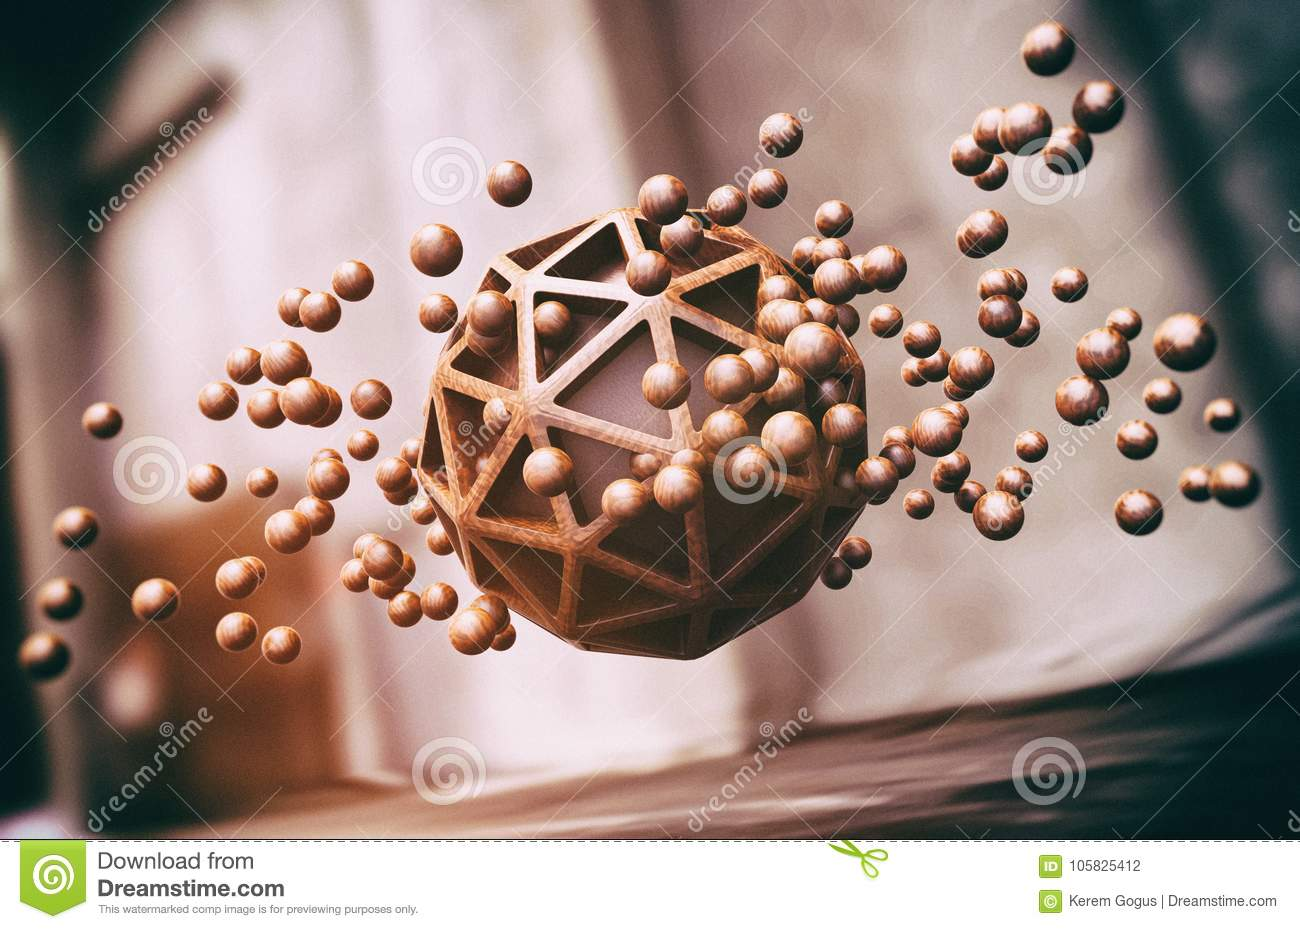 Floating Wooden Spheres Abstract Background